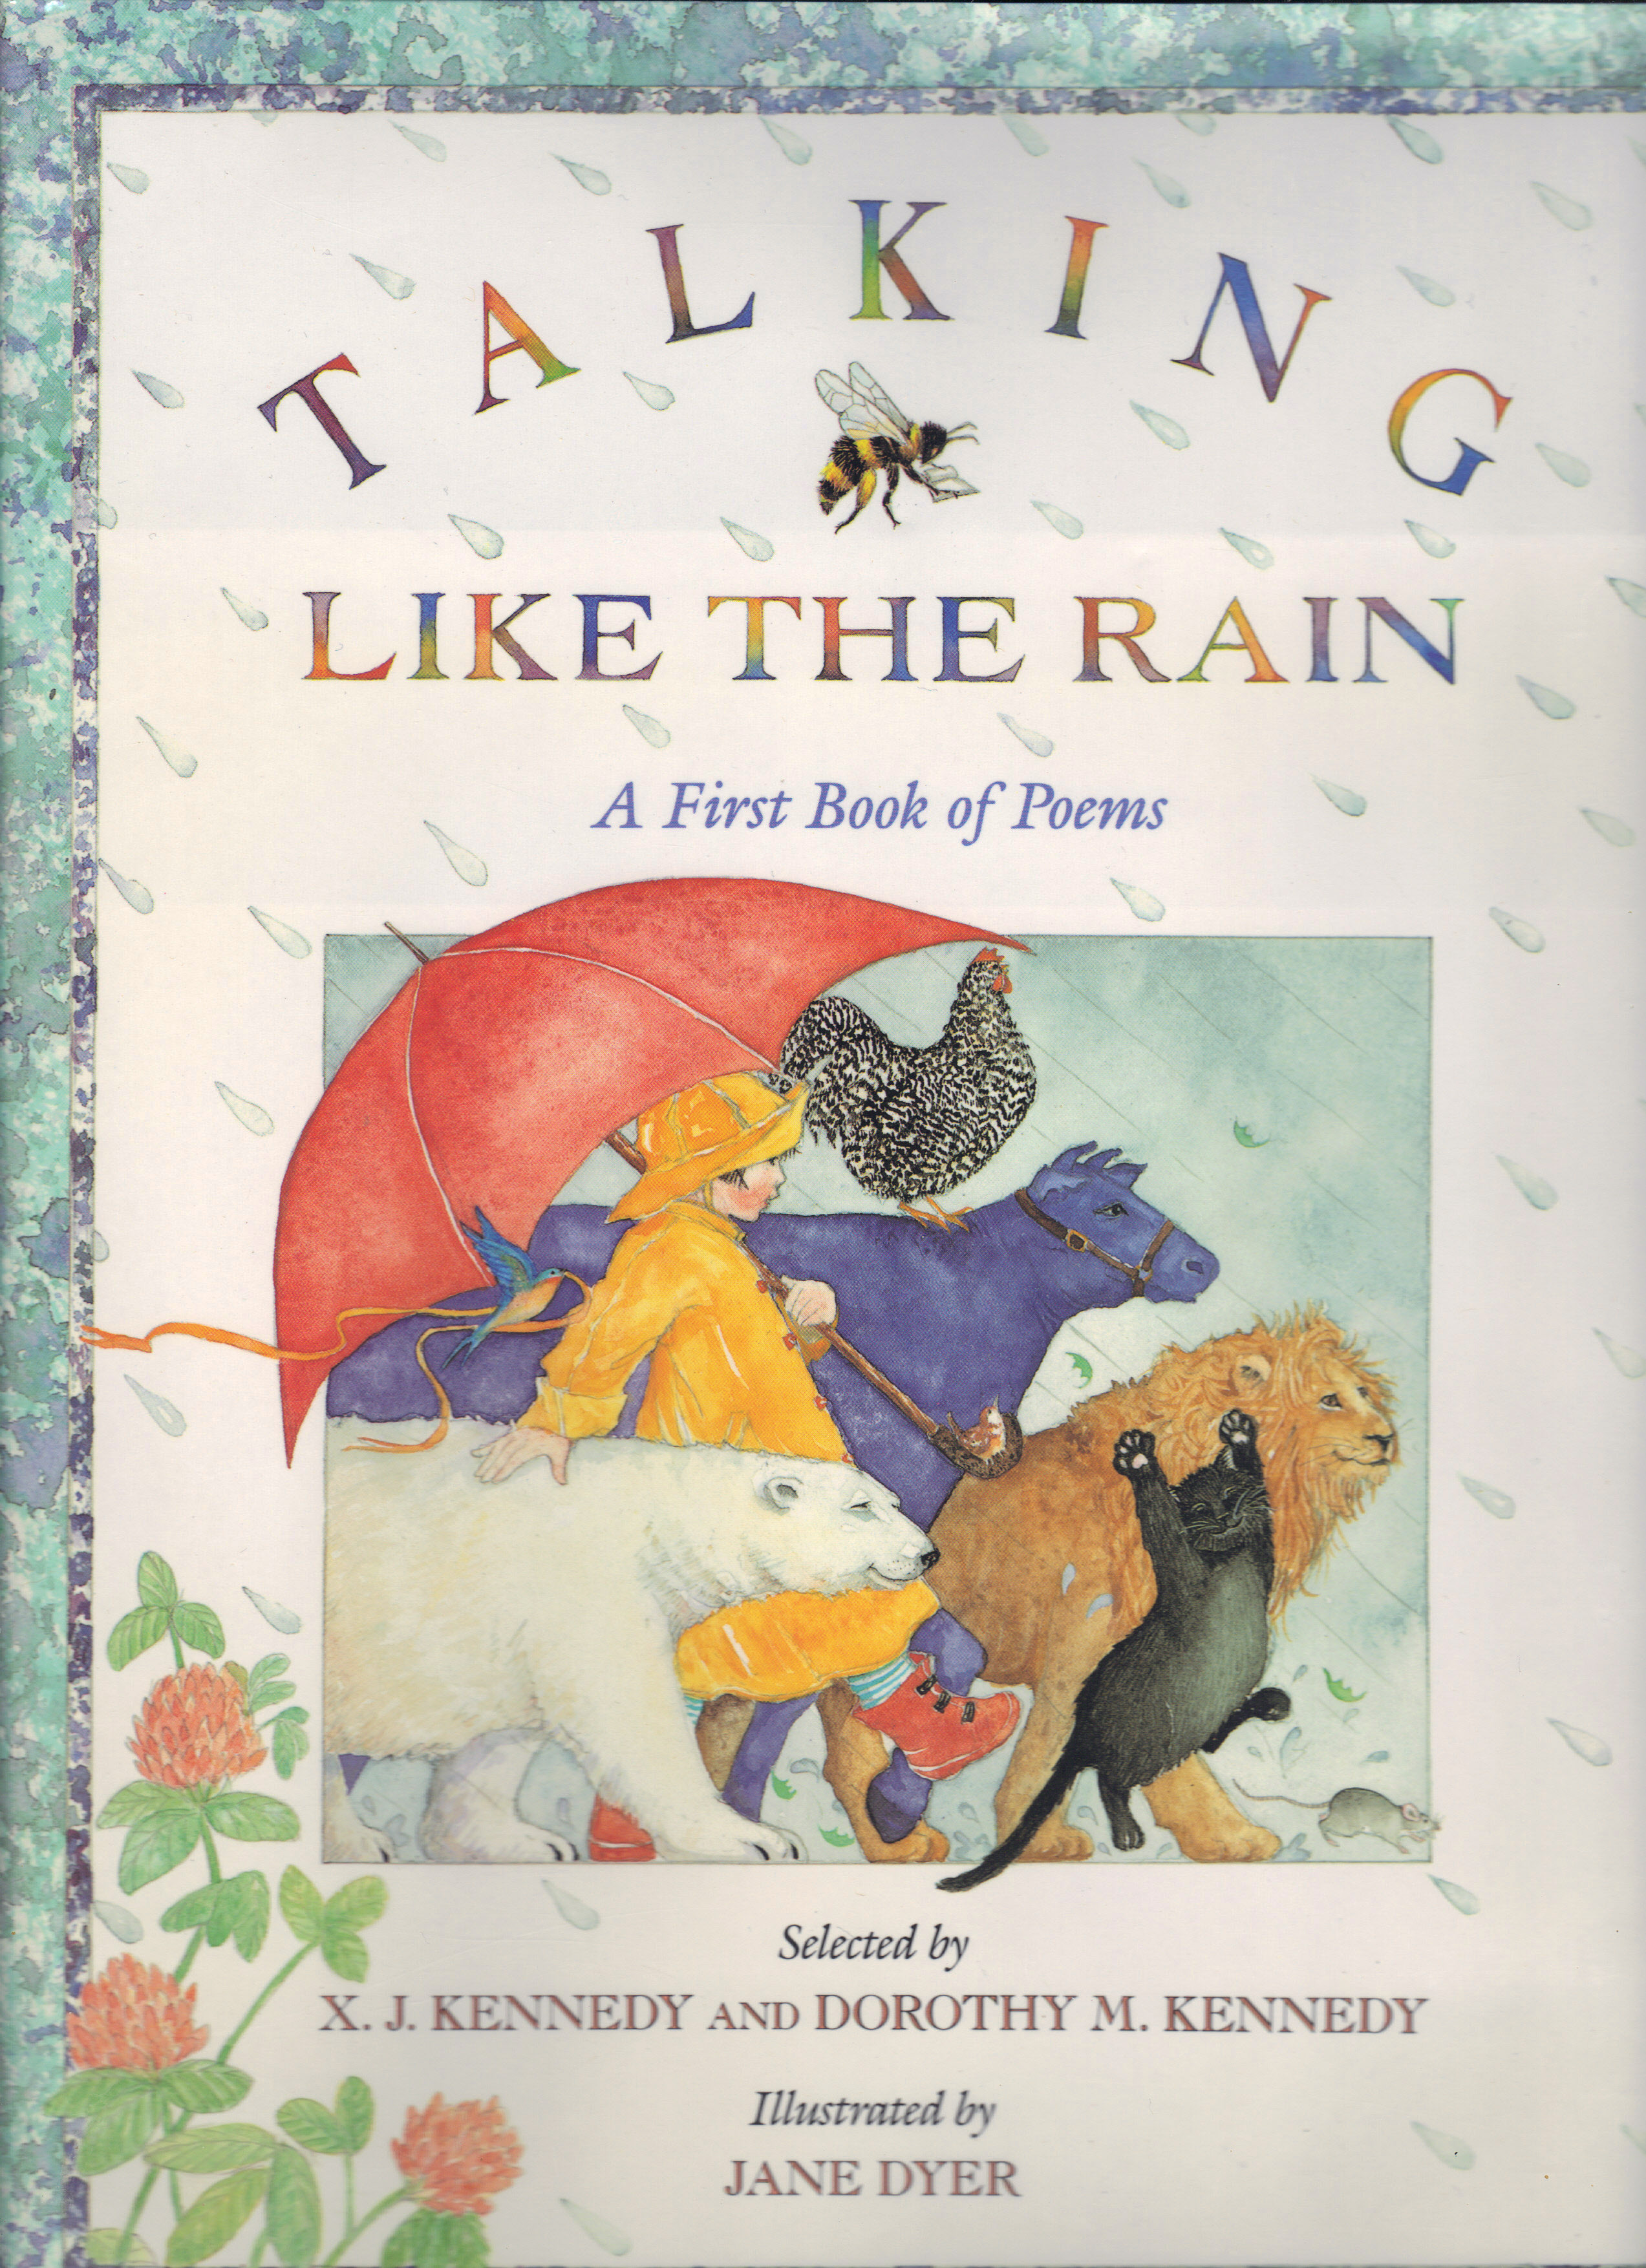 Image for TALKING LIKE THE RAIN, A First Book of Poems